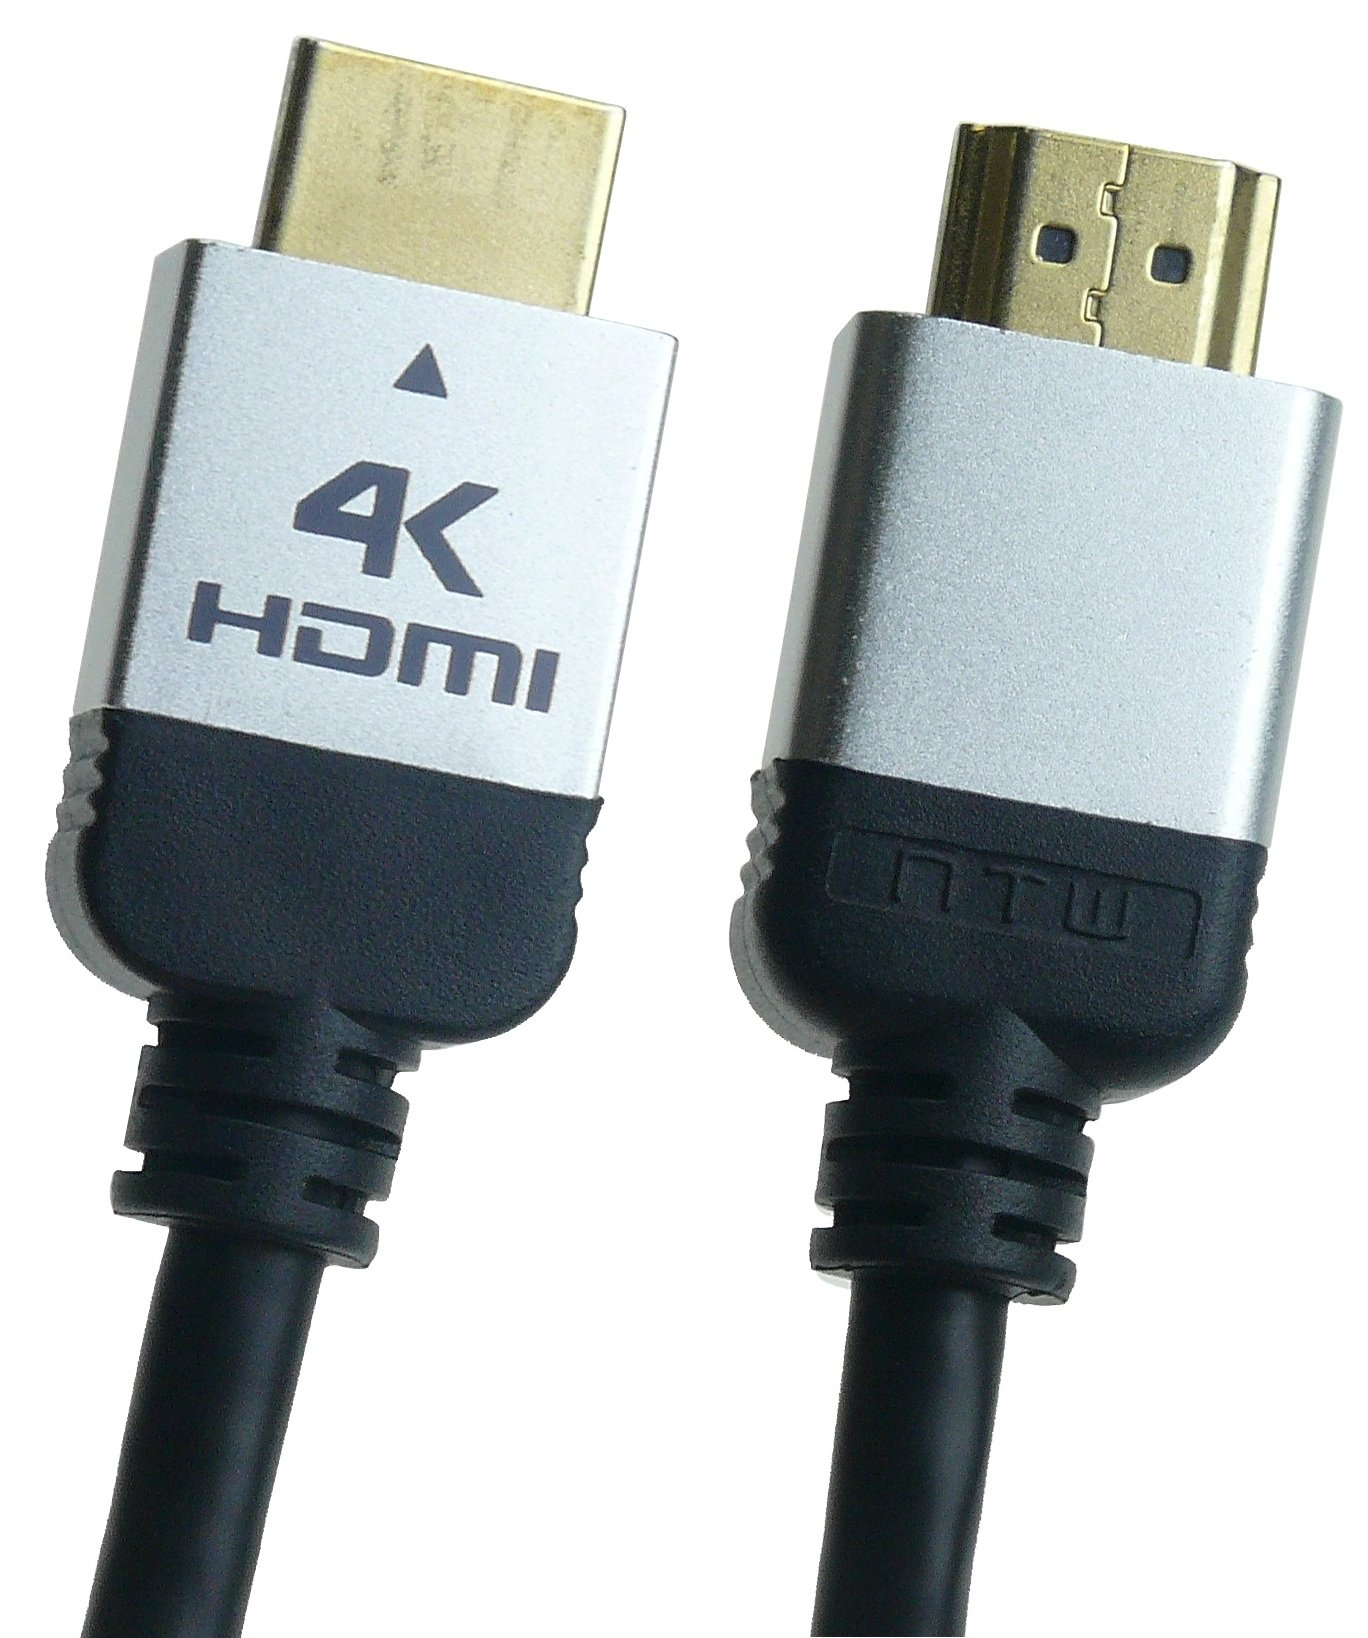 NTW NHDMI2P-012+ 12' Ultra HD PURE PLUS 4K High Speed HDMI Cable with Ethernet